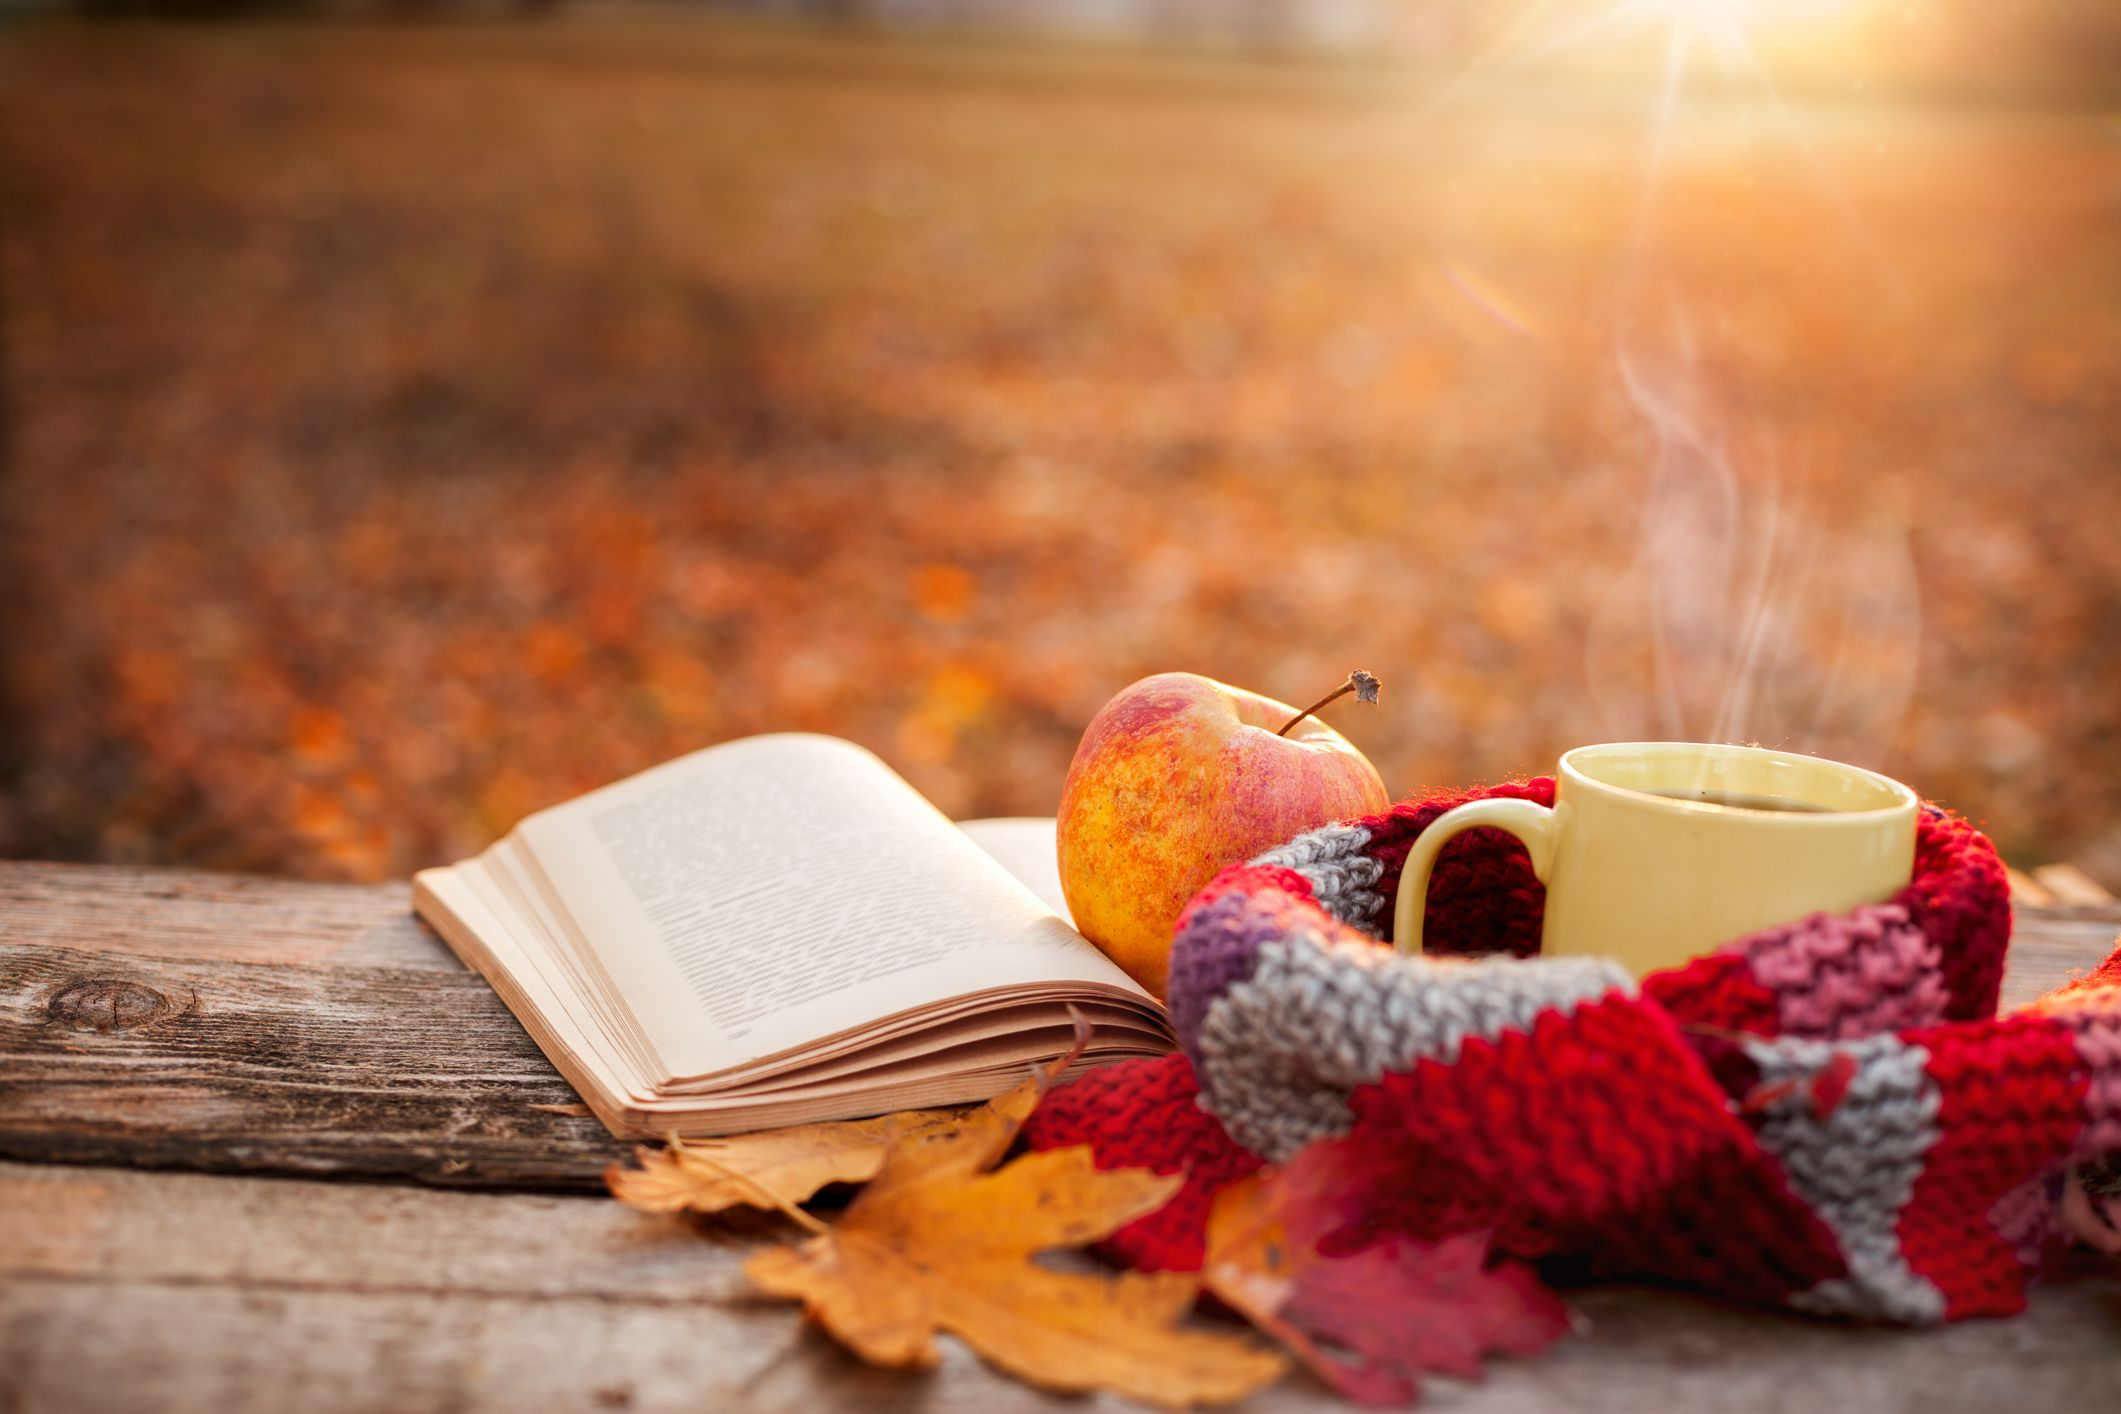 55 Best Fall Quotes 2020 - Inspirational Autumn Quotes for Instagram